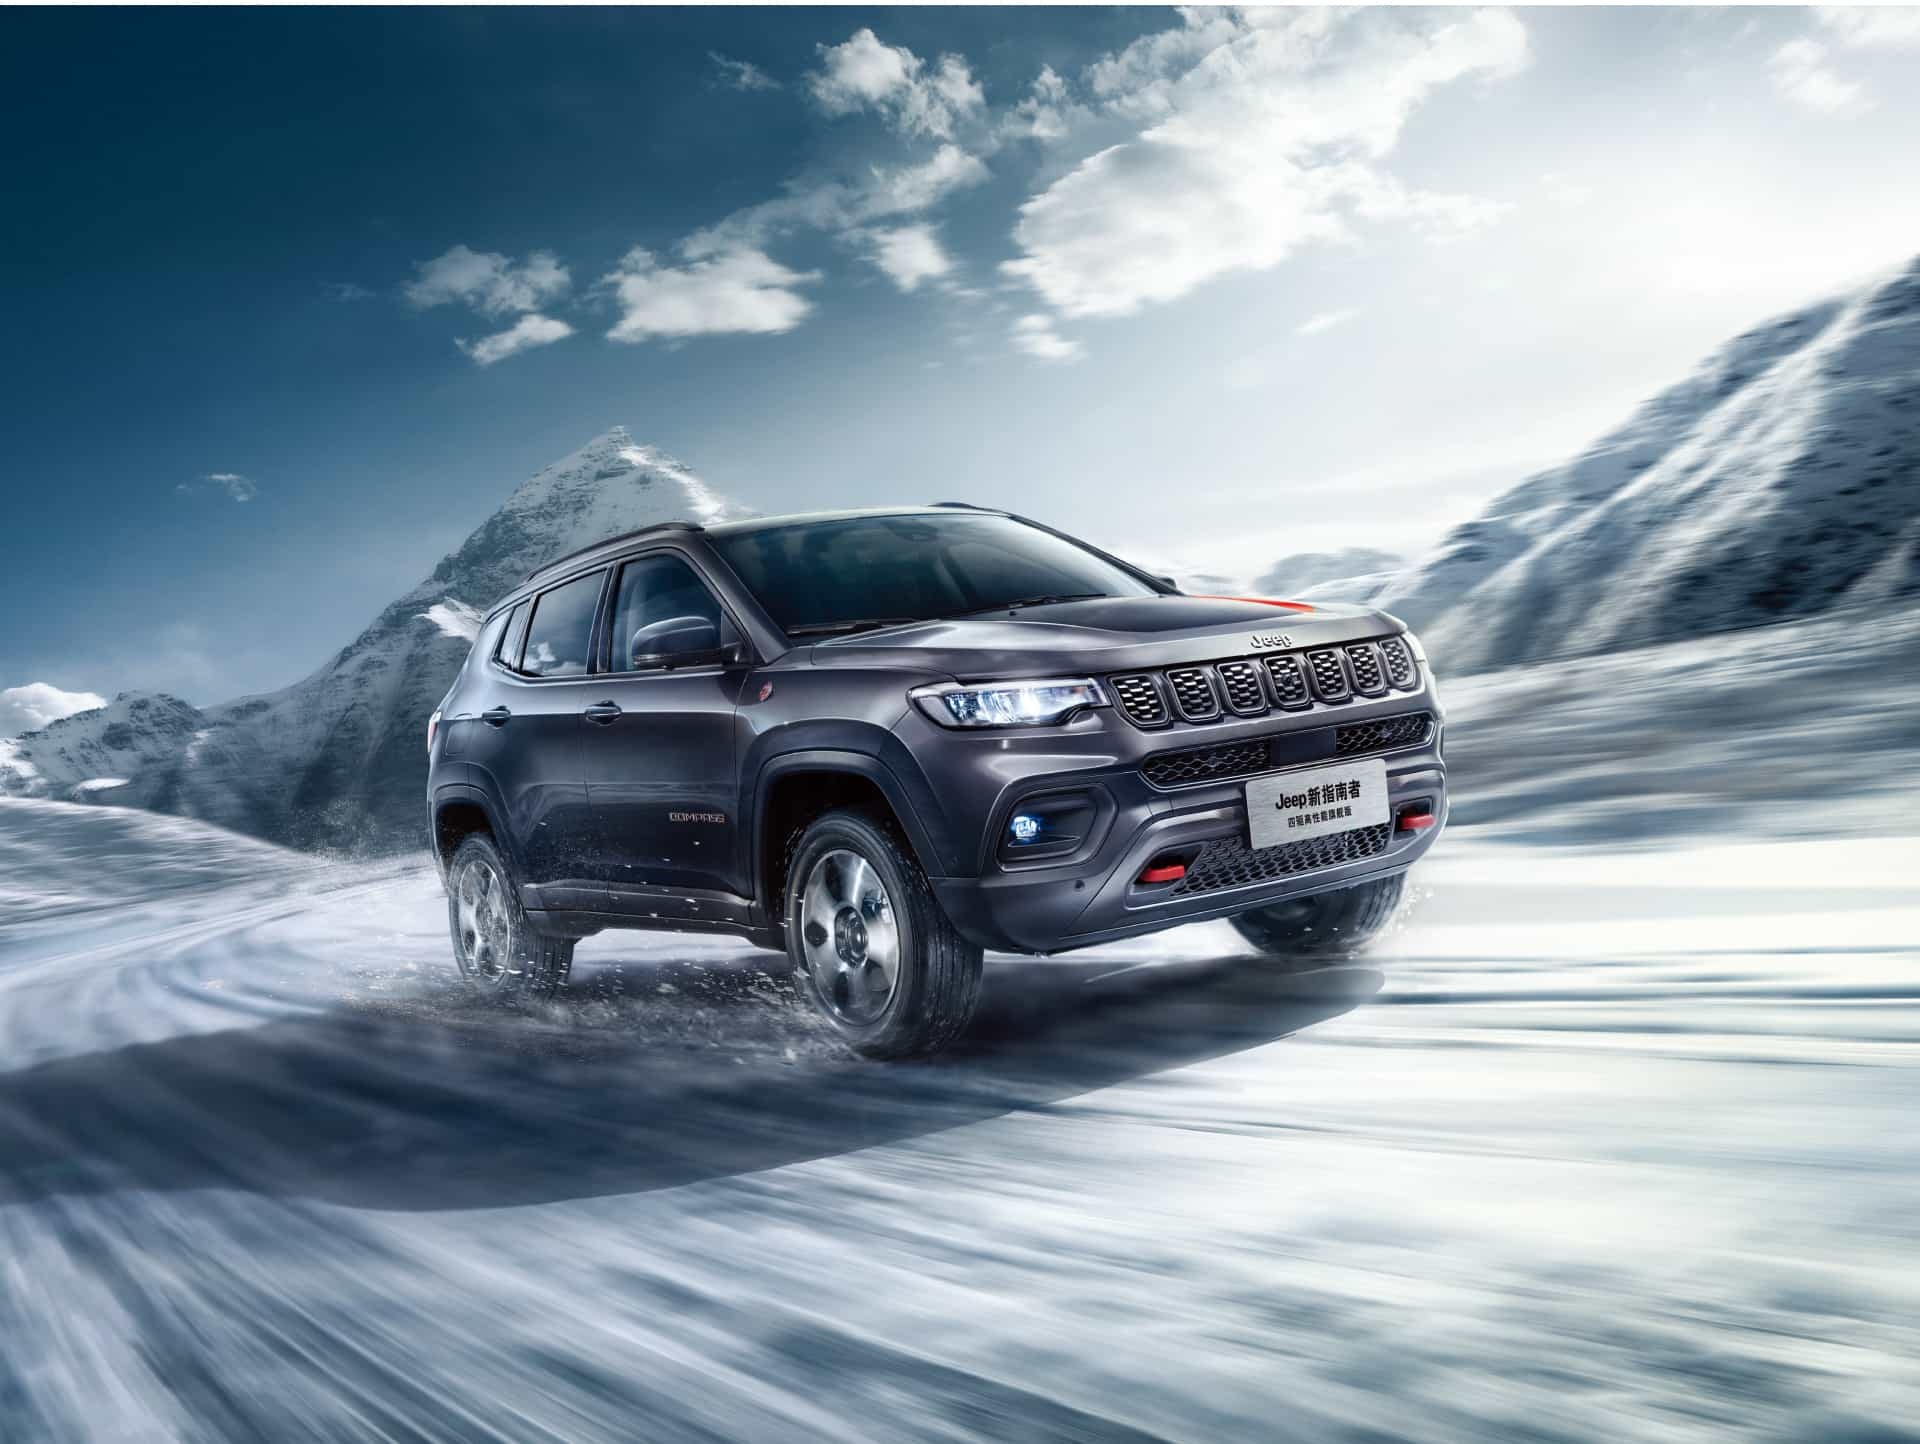 "<p>The facelifted 2021 Jeep Compass coming to India was first revealed in China in November 2020. <a href=""https://www.overdrive.in/news-cars-auto/upcoming-2021-jeep-compass-facelift-revealed-internationally/"">Read about it here.</a>&nbsp;Seen here is the rugged Trailhawk version, expected to join the India line-up eventually</p>"